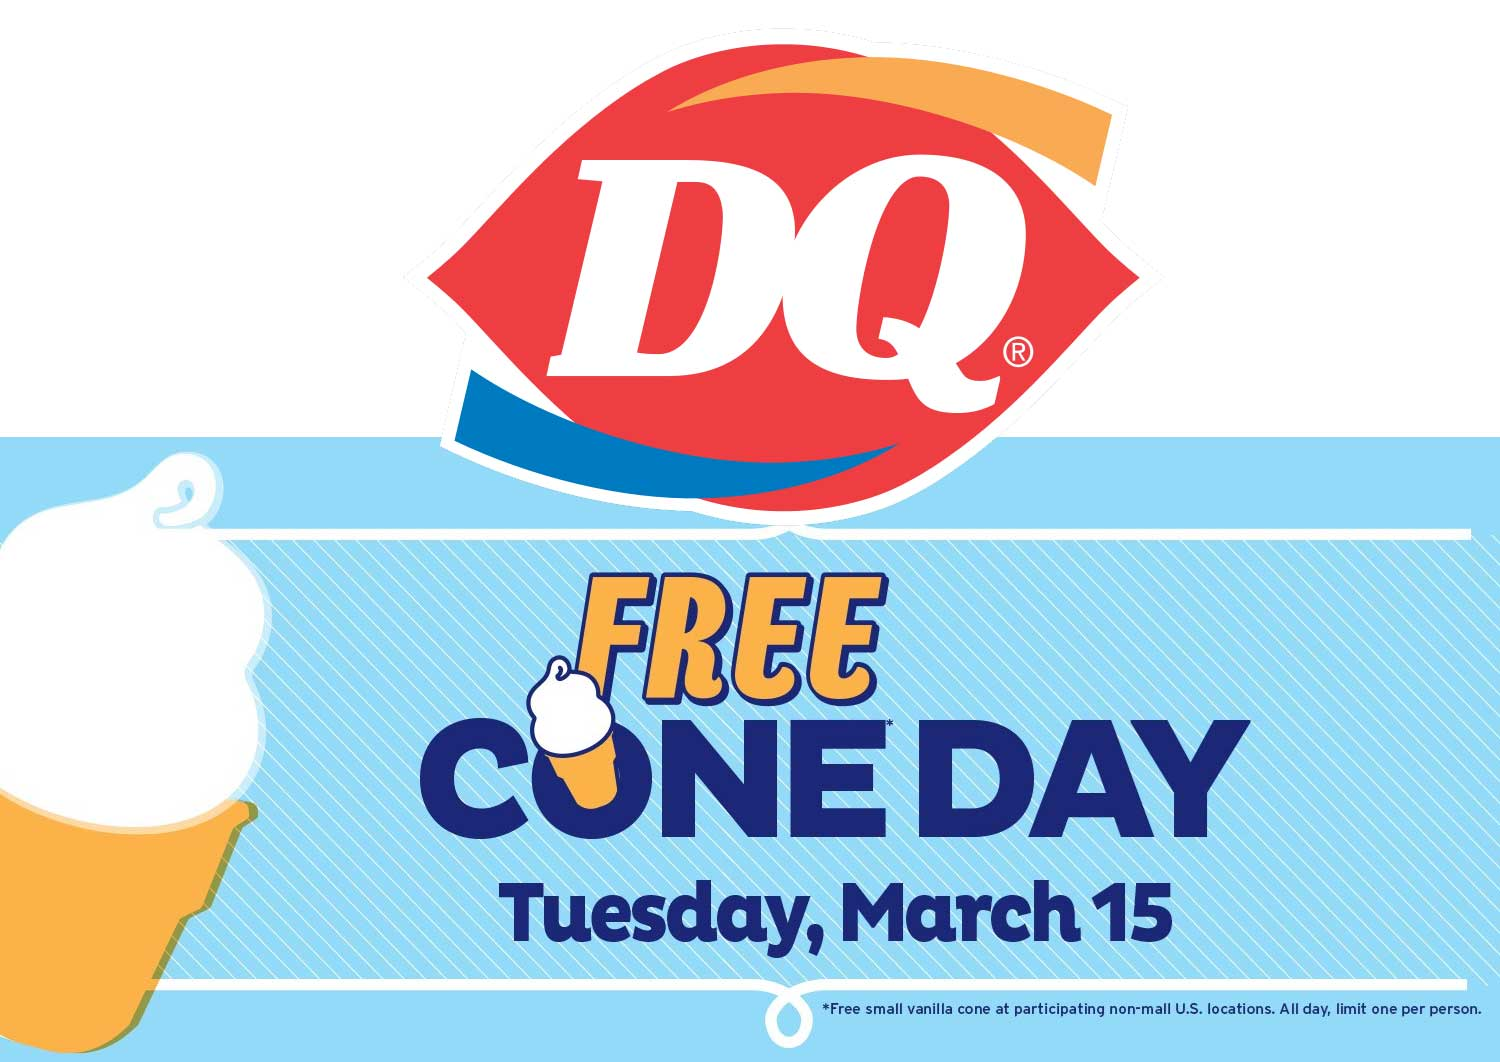 Dairy Queen Coupon August 2018 Free ice cream cone Tuesday at Dairy Queen